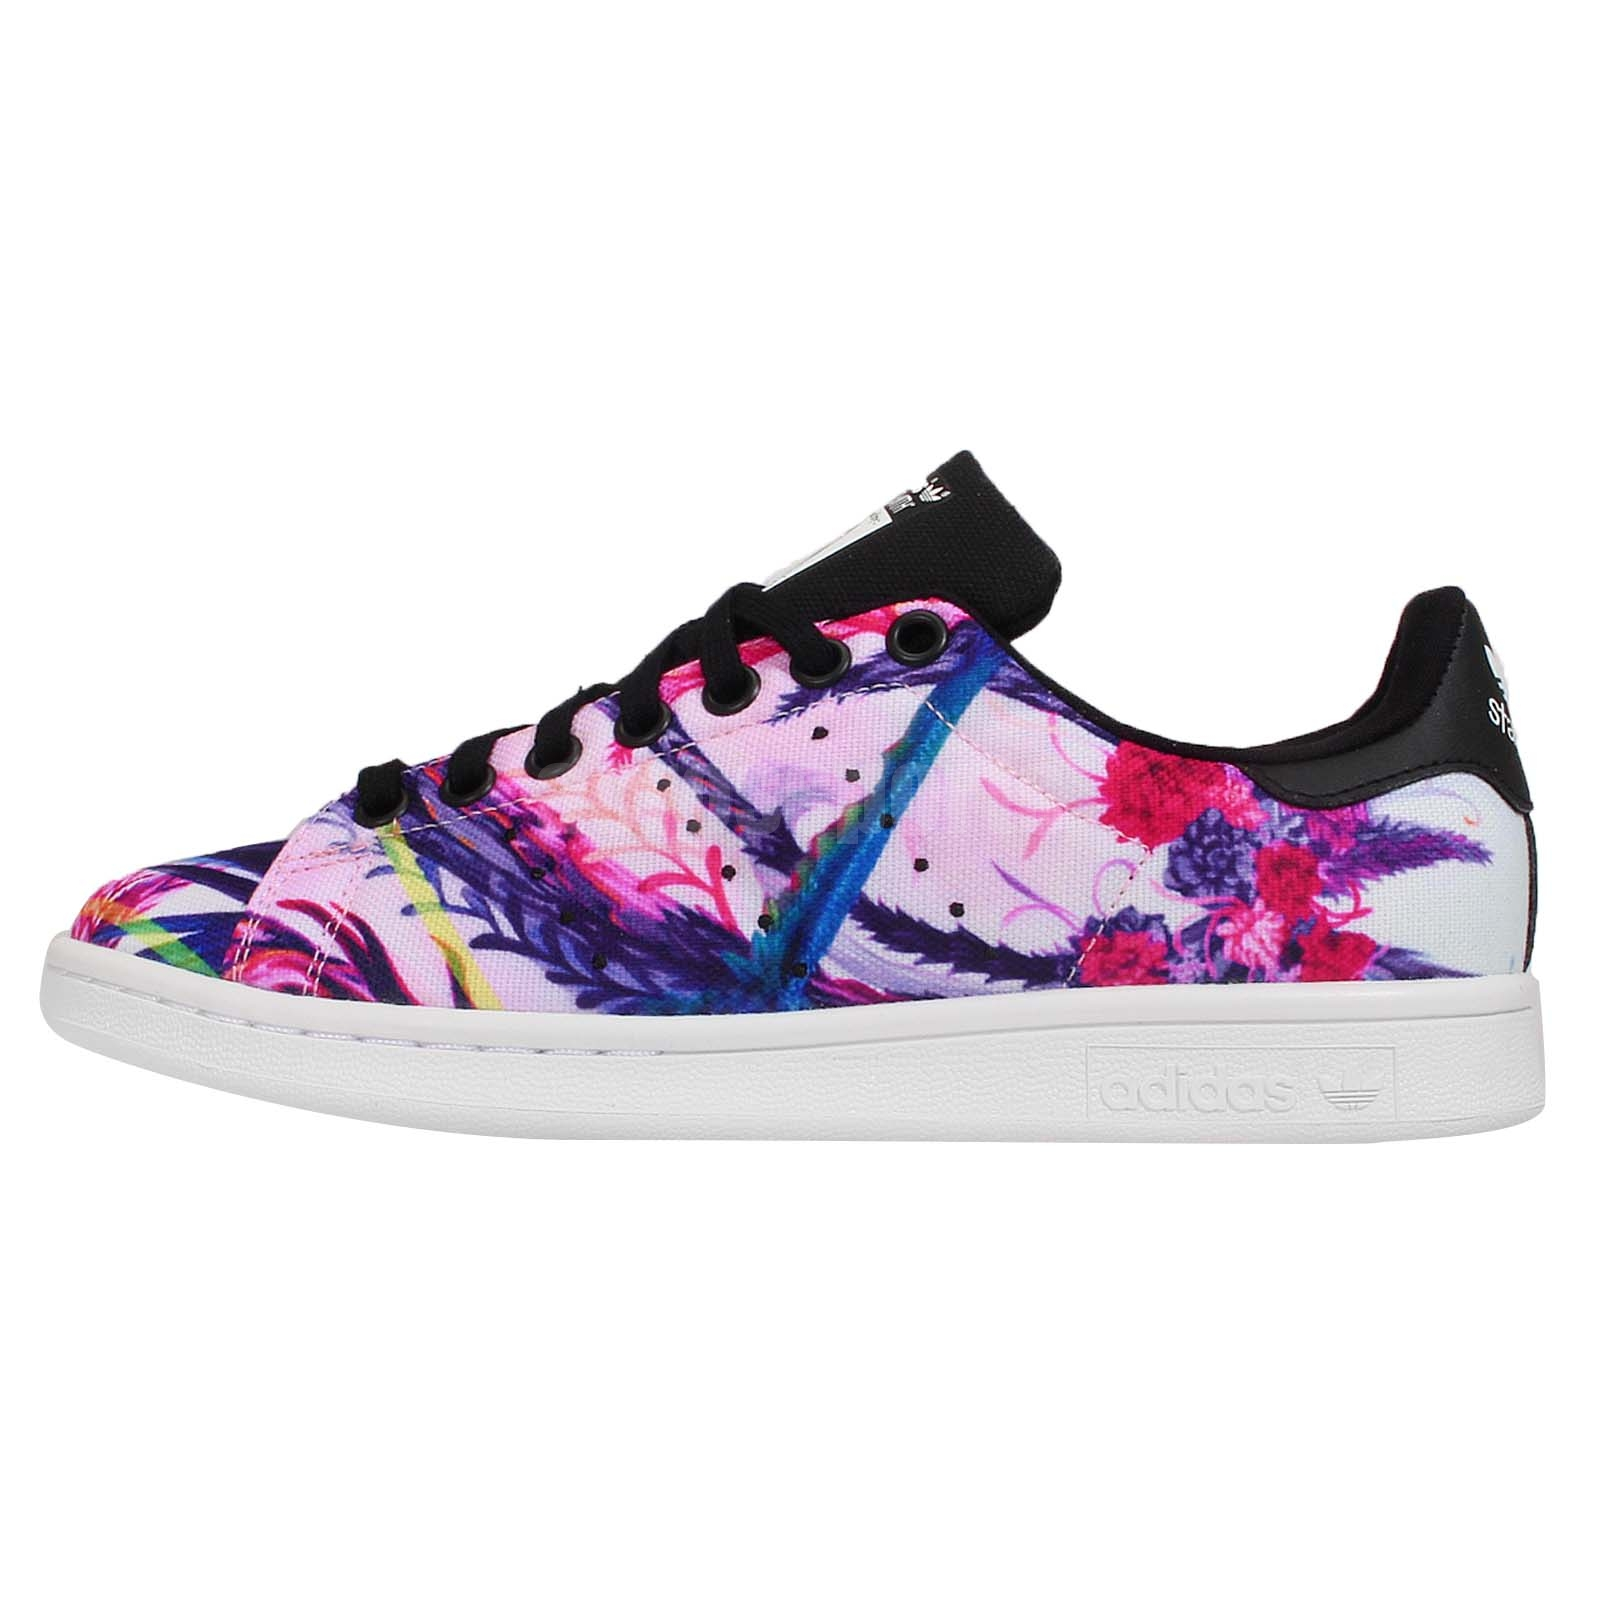 adidas Originals Stan Smith W Digital Graphic Print Womens Running Shoes S81229